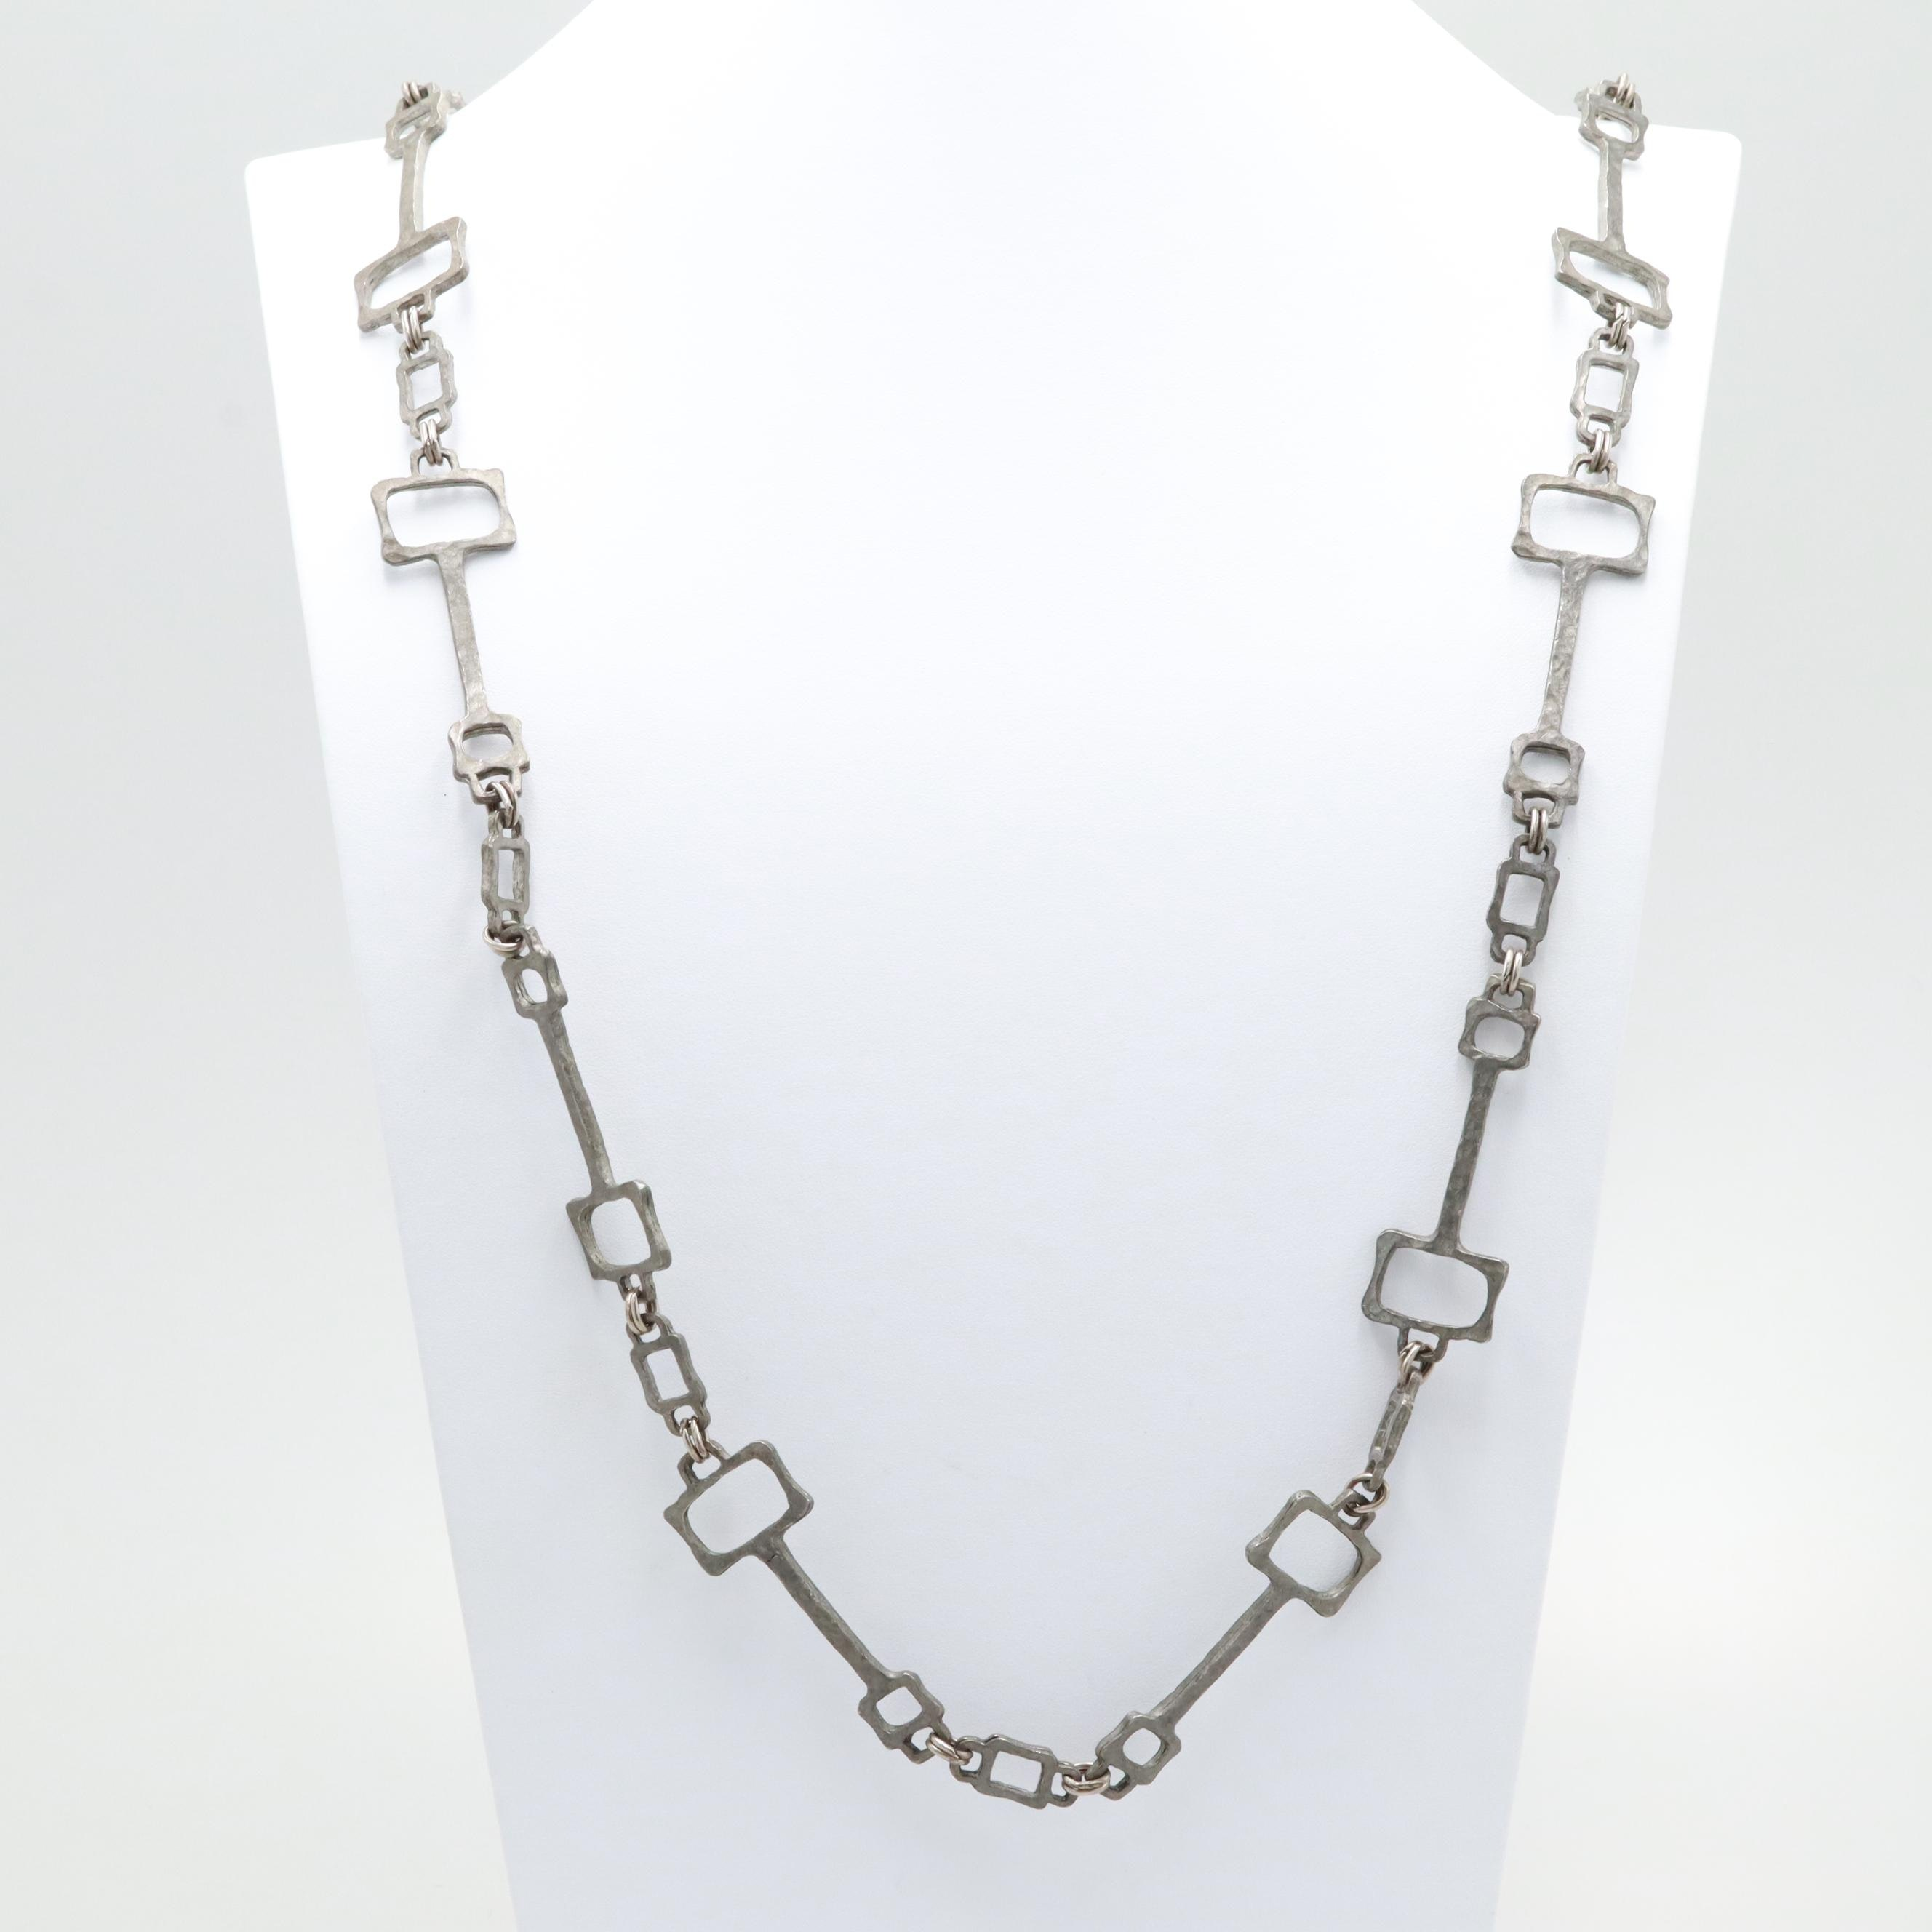 Brutalist Style Linked Necklace